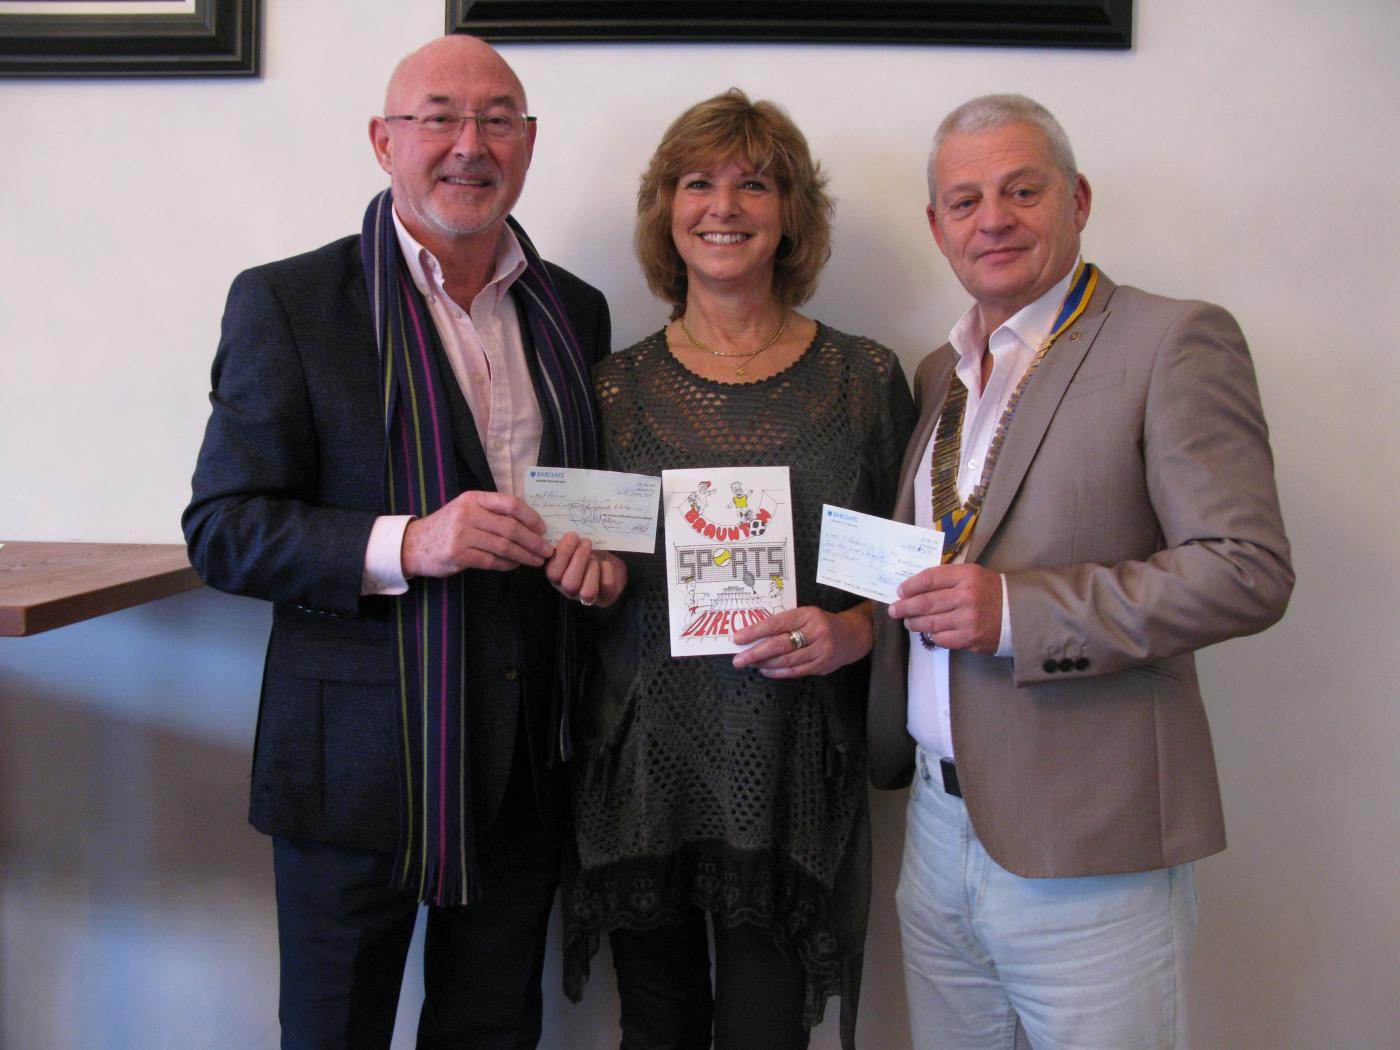 Mike Leverton President of Rotary Club of Braunton and Ross Moon presenting cheques to Trish Parsons for the Braunton Sports Directory